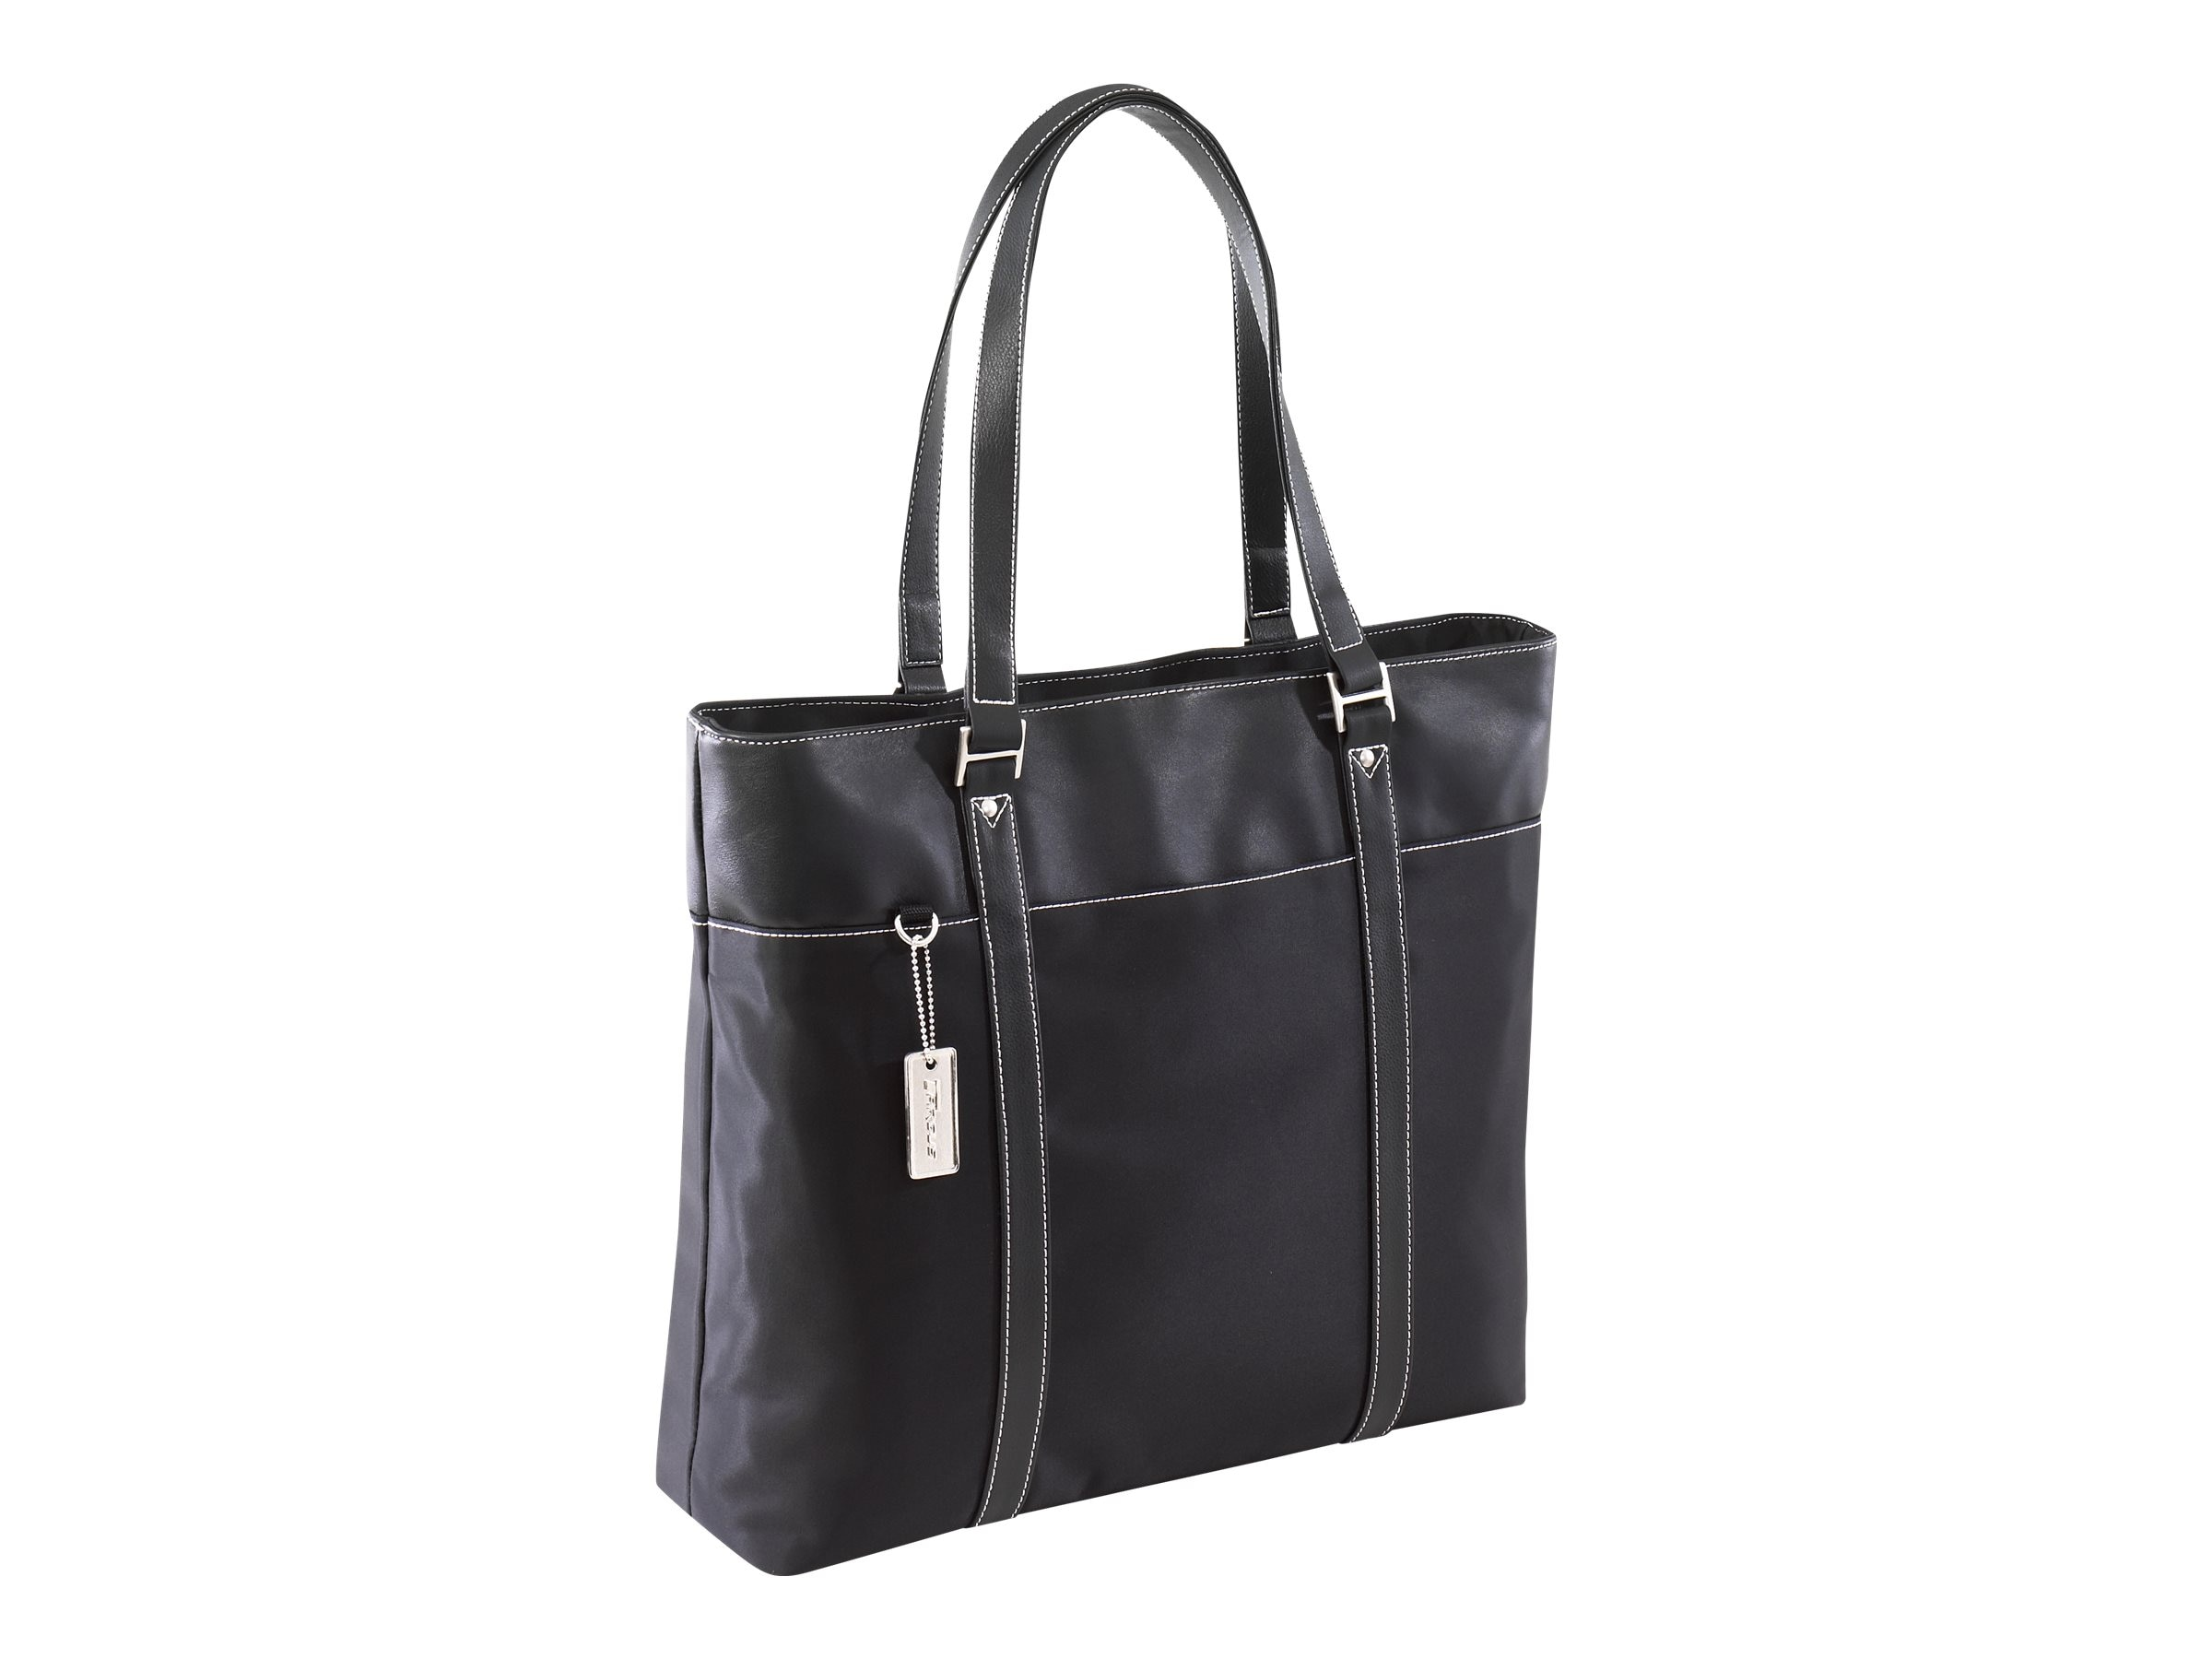 Targus 15.4 Ladies Deluxe Tote, with SafePORT Air Protection Cushioning, Black, TLT004A